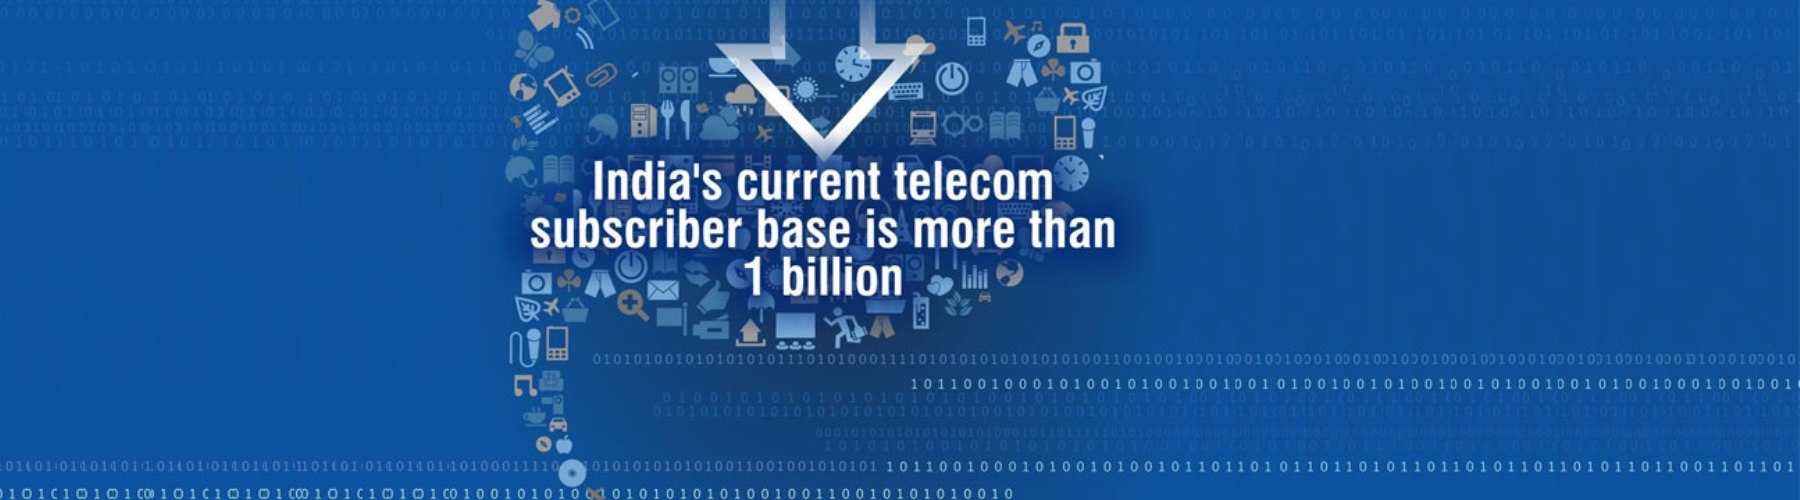 Indias Current Telecom Subscriber Base is more than 1 Billion